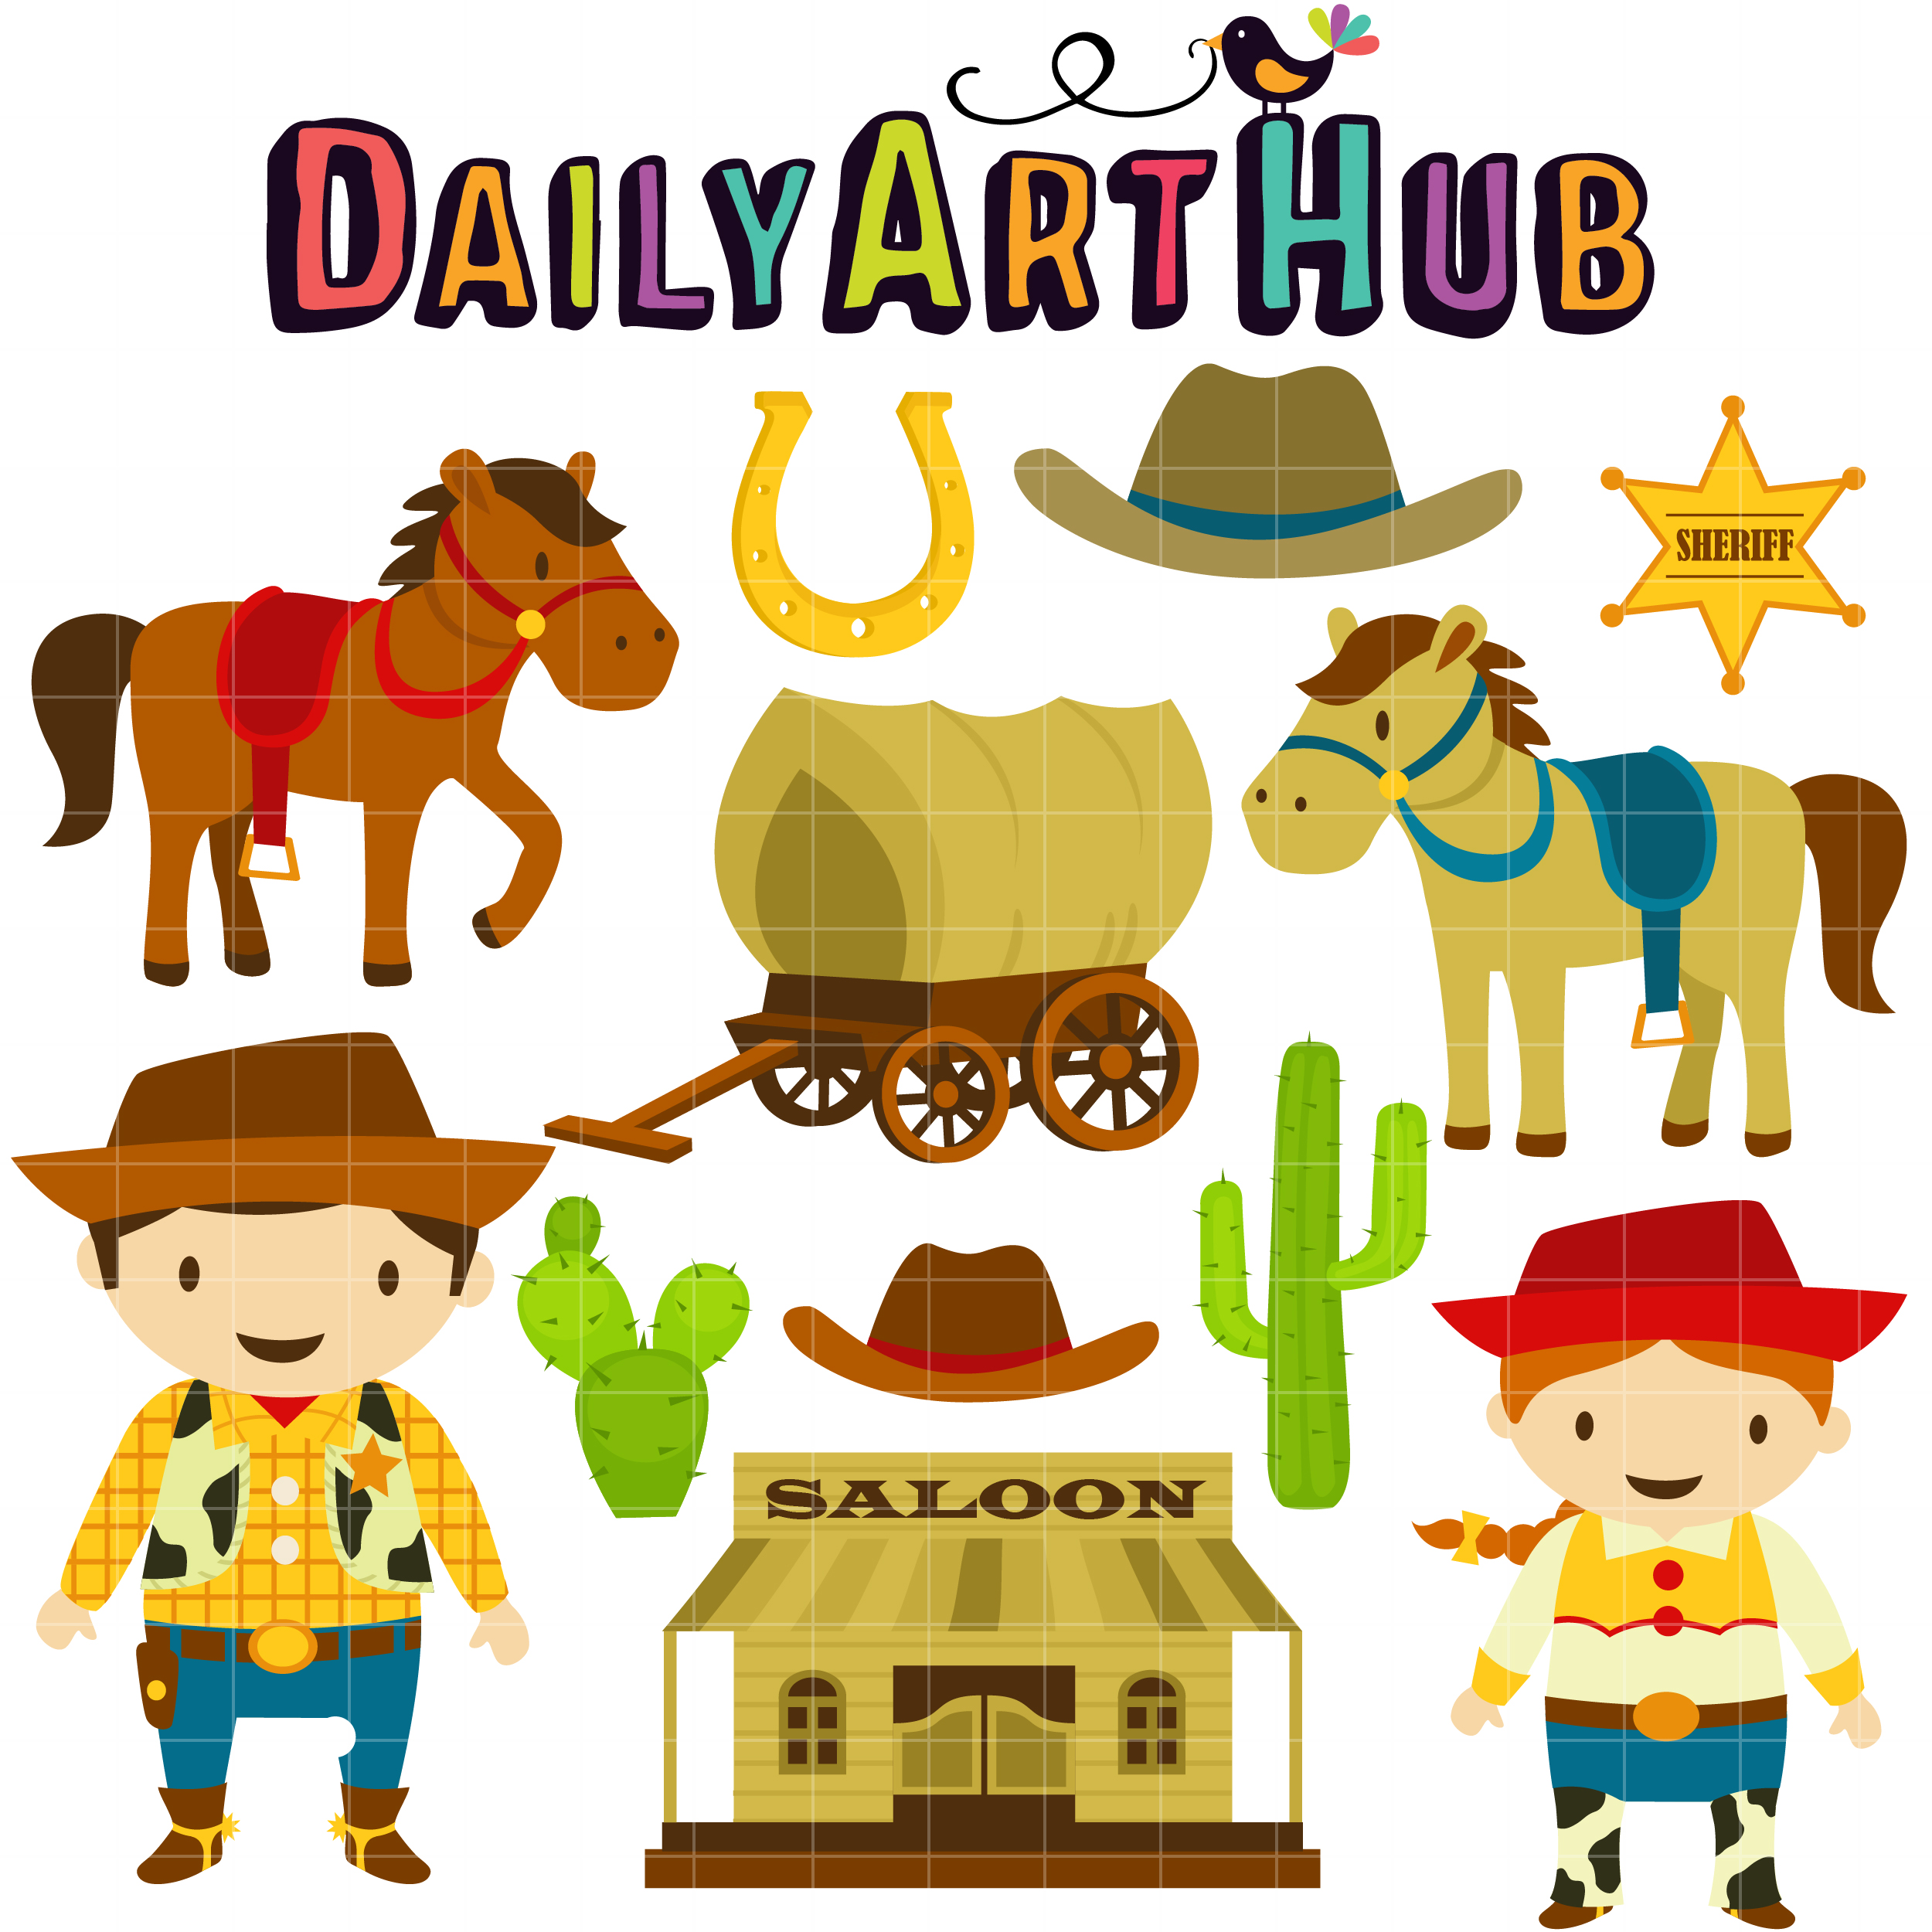 wild west cowboy clip art set daily art hub free clip art everyday rh dailyarthub com free wild west clip art vector Old West Town Clip Art